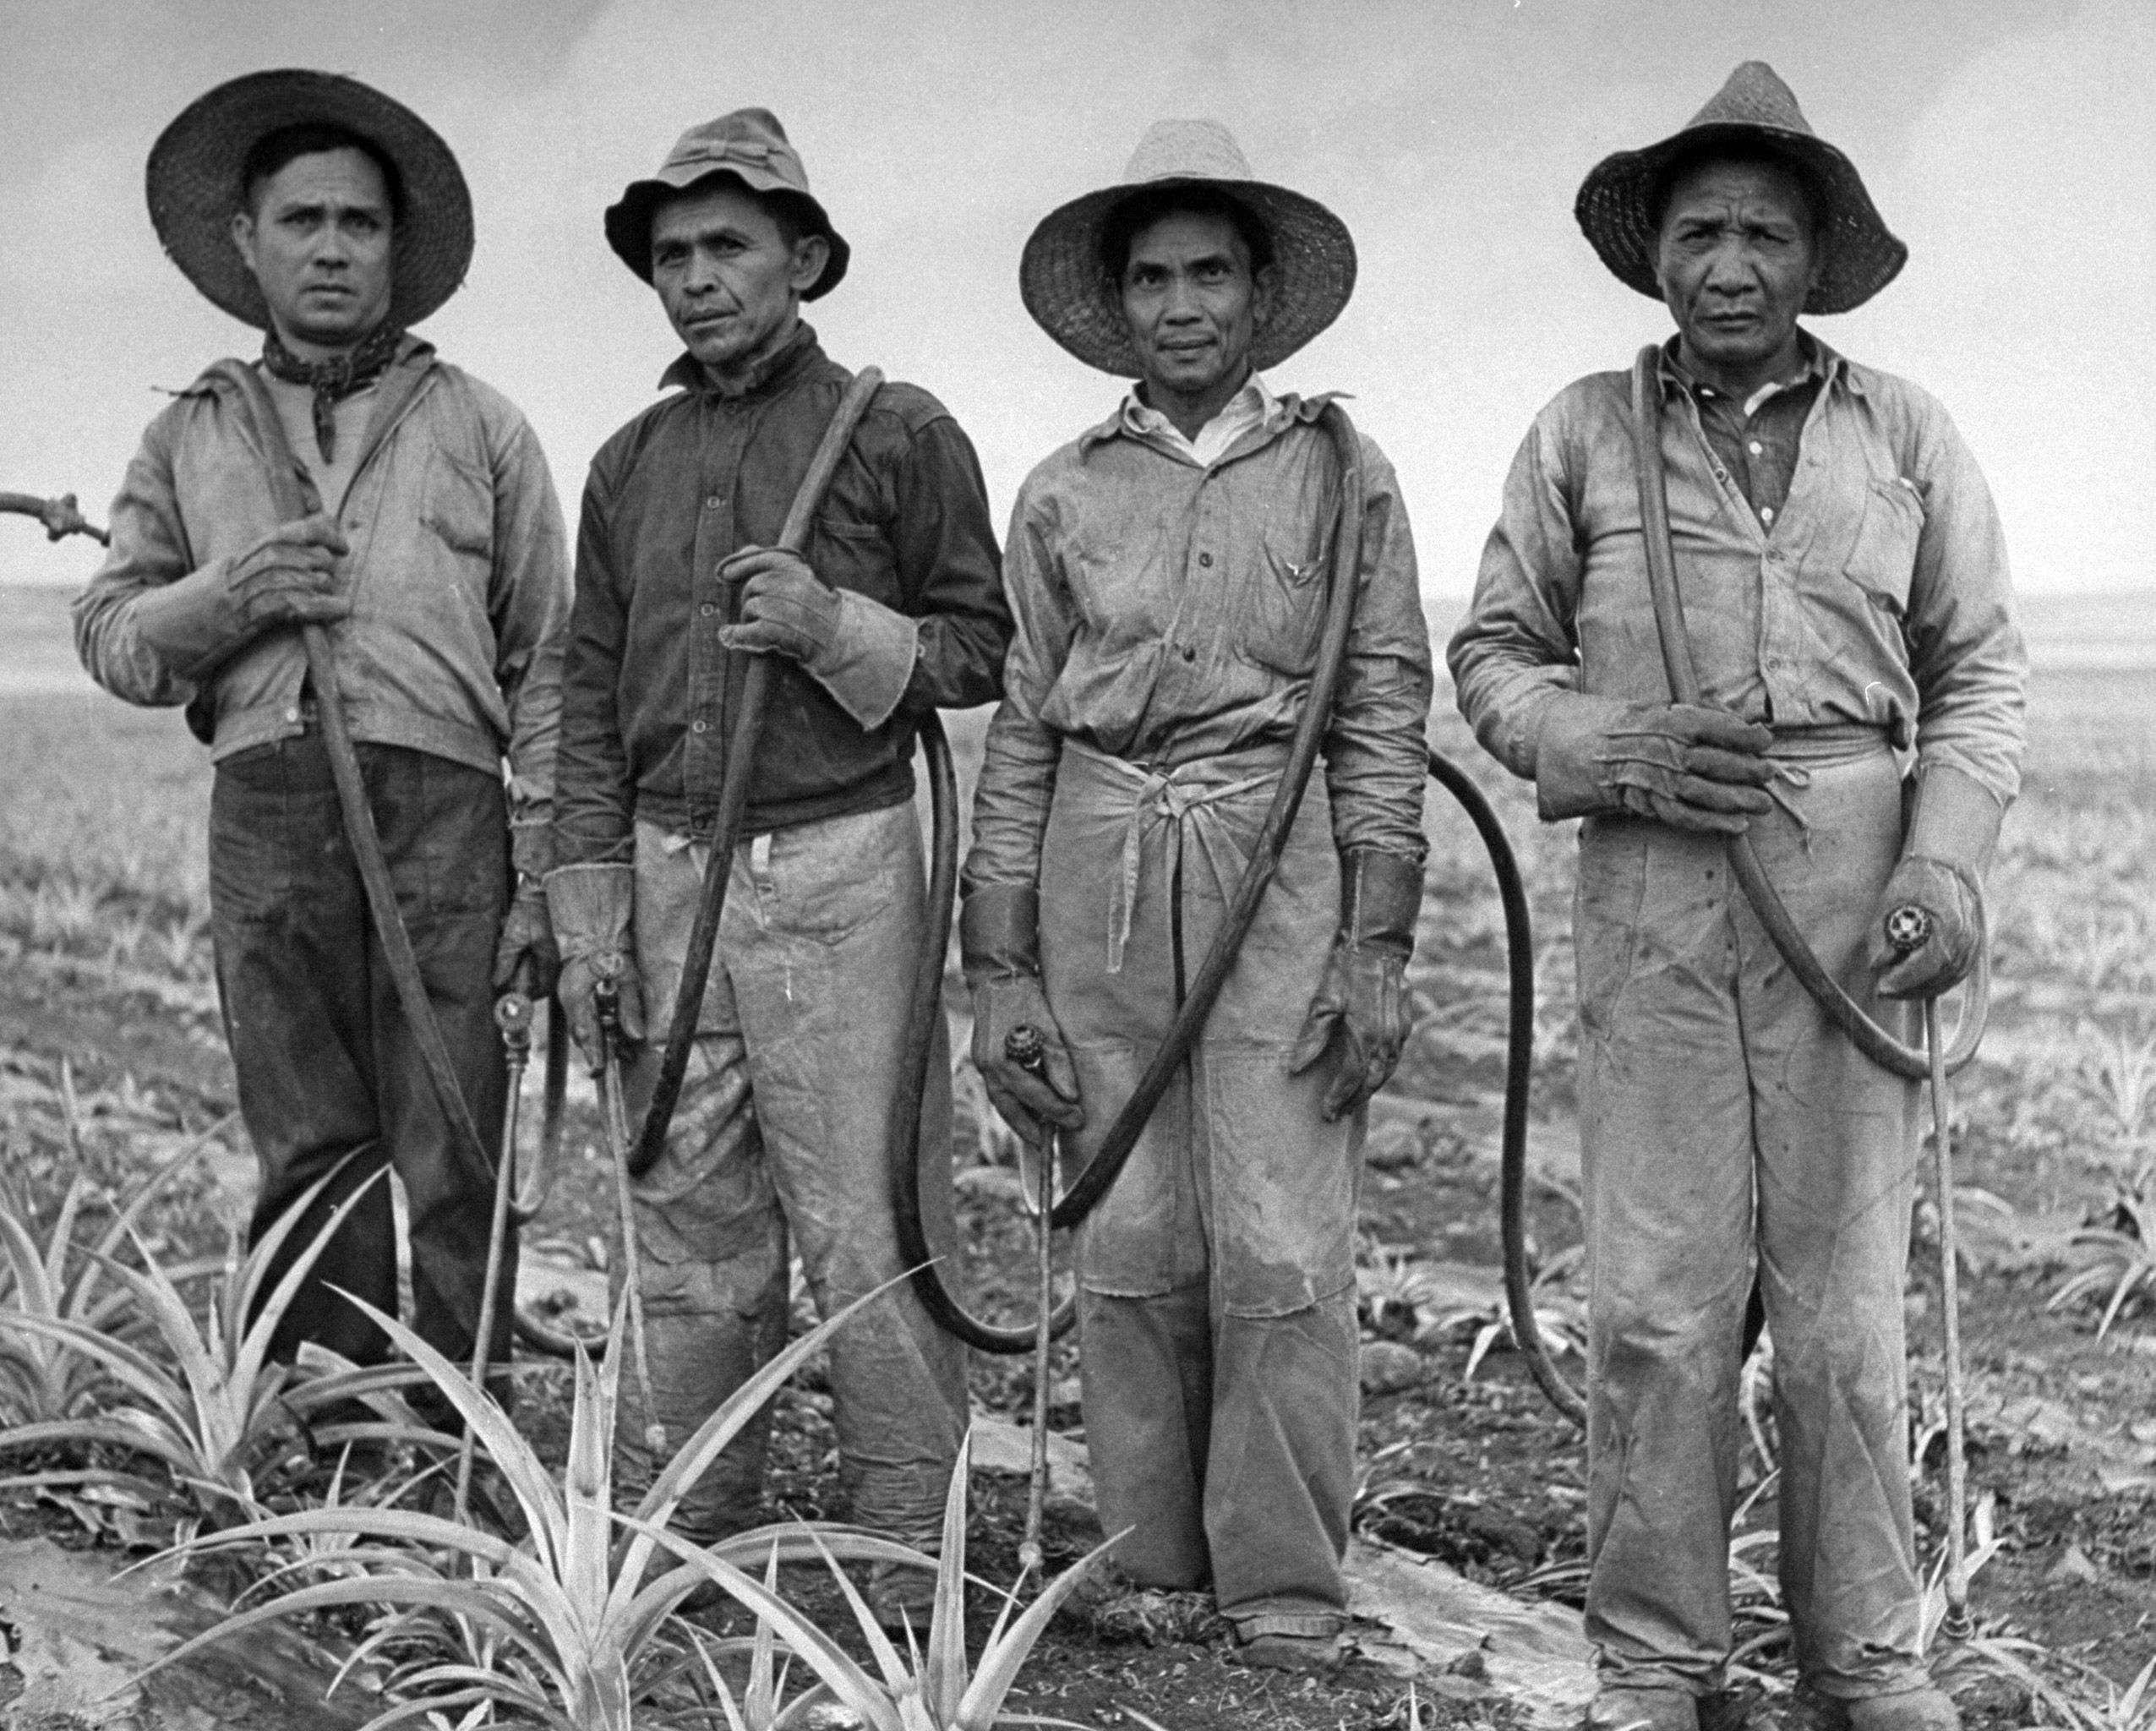 Plant sprayers at the Dole Plantation in Hawaii pose for a portrait.